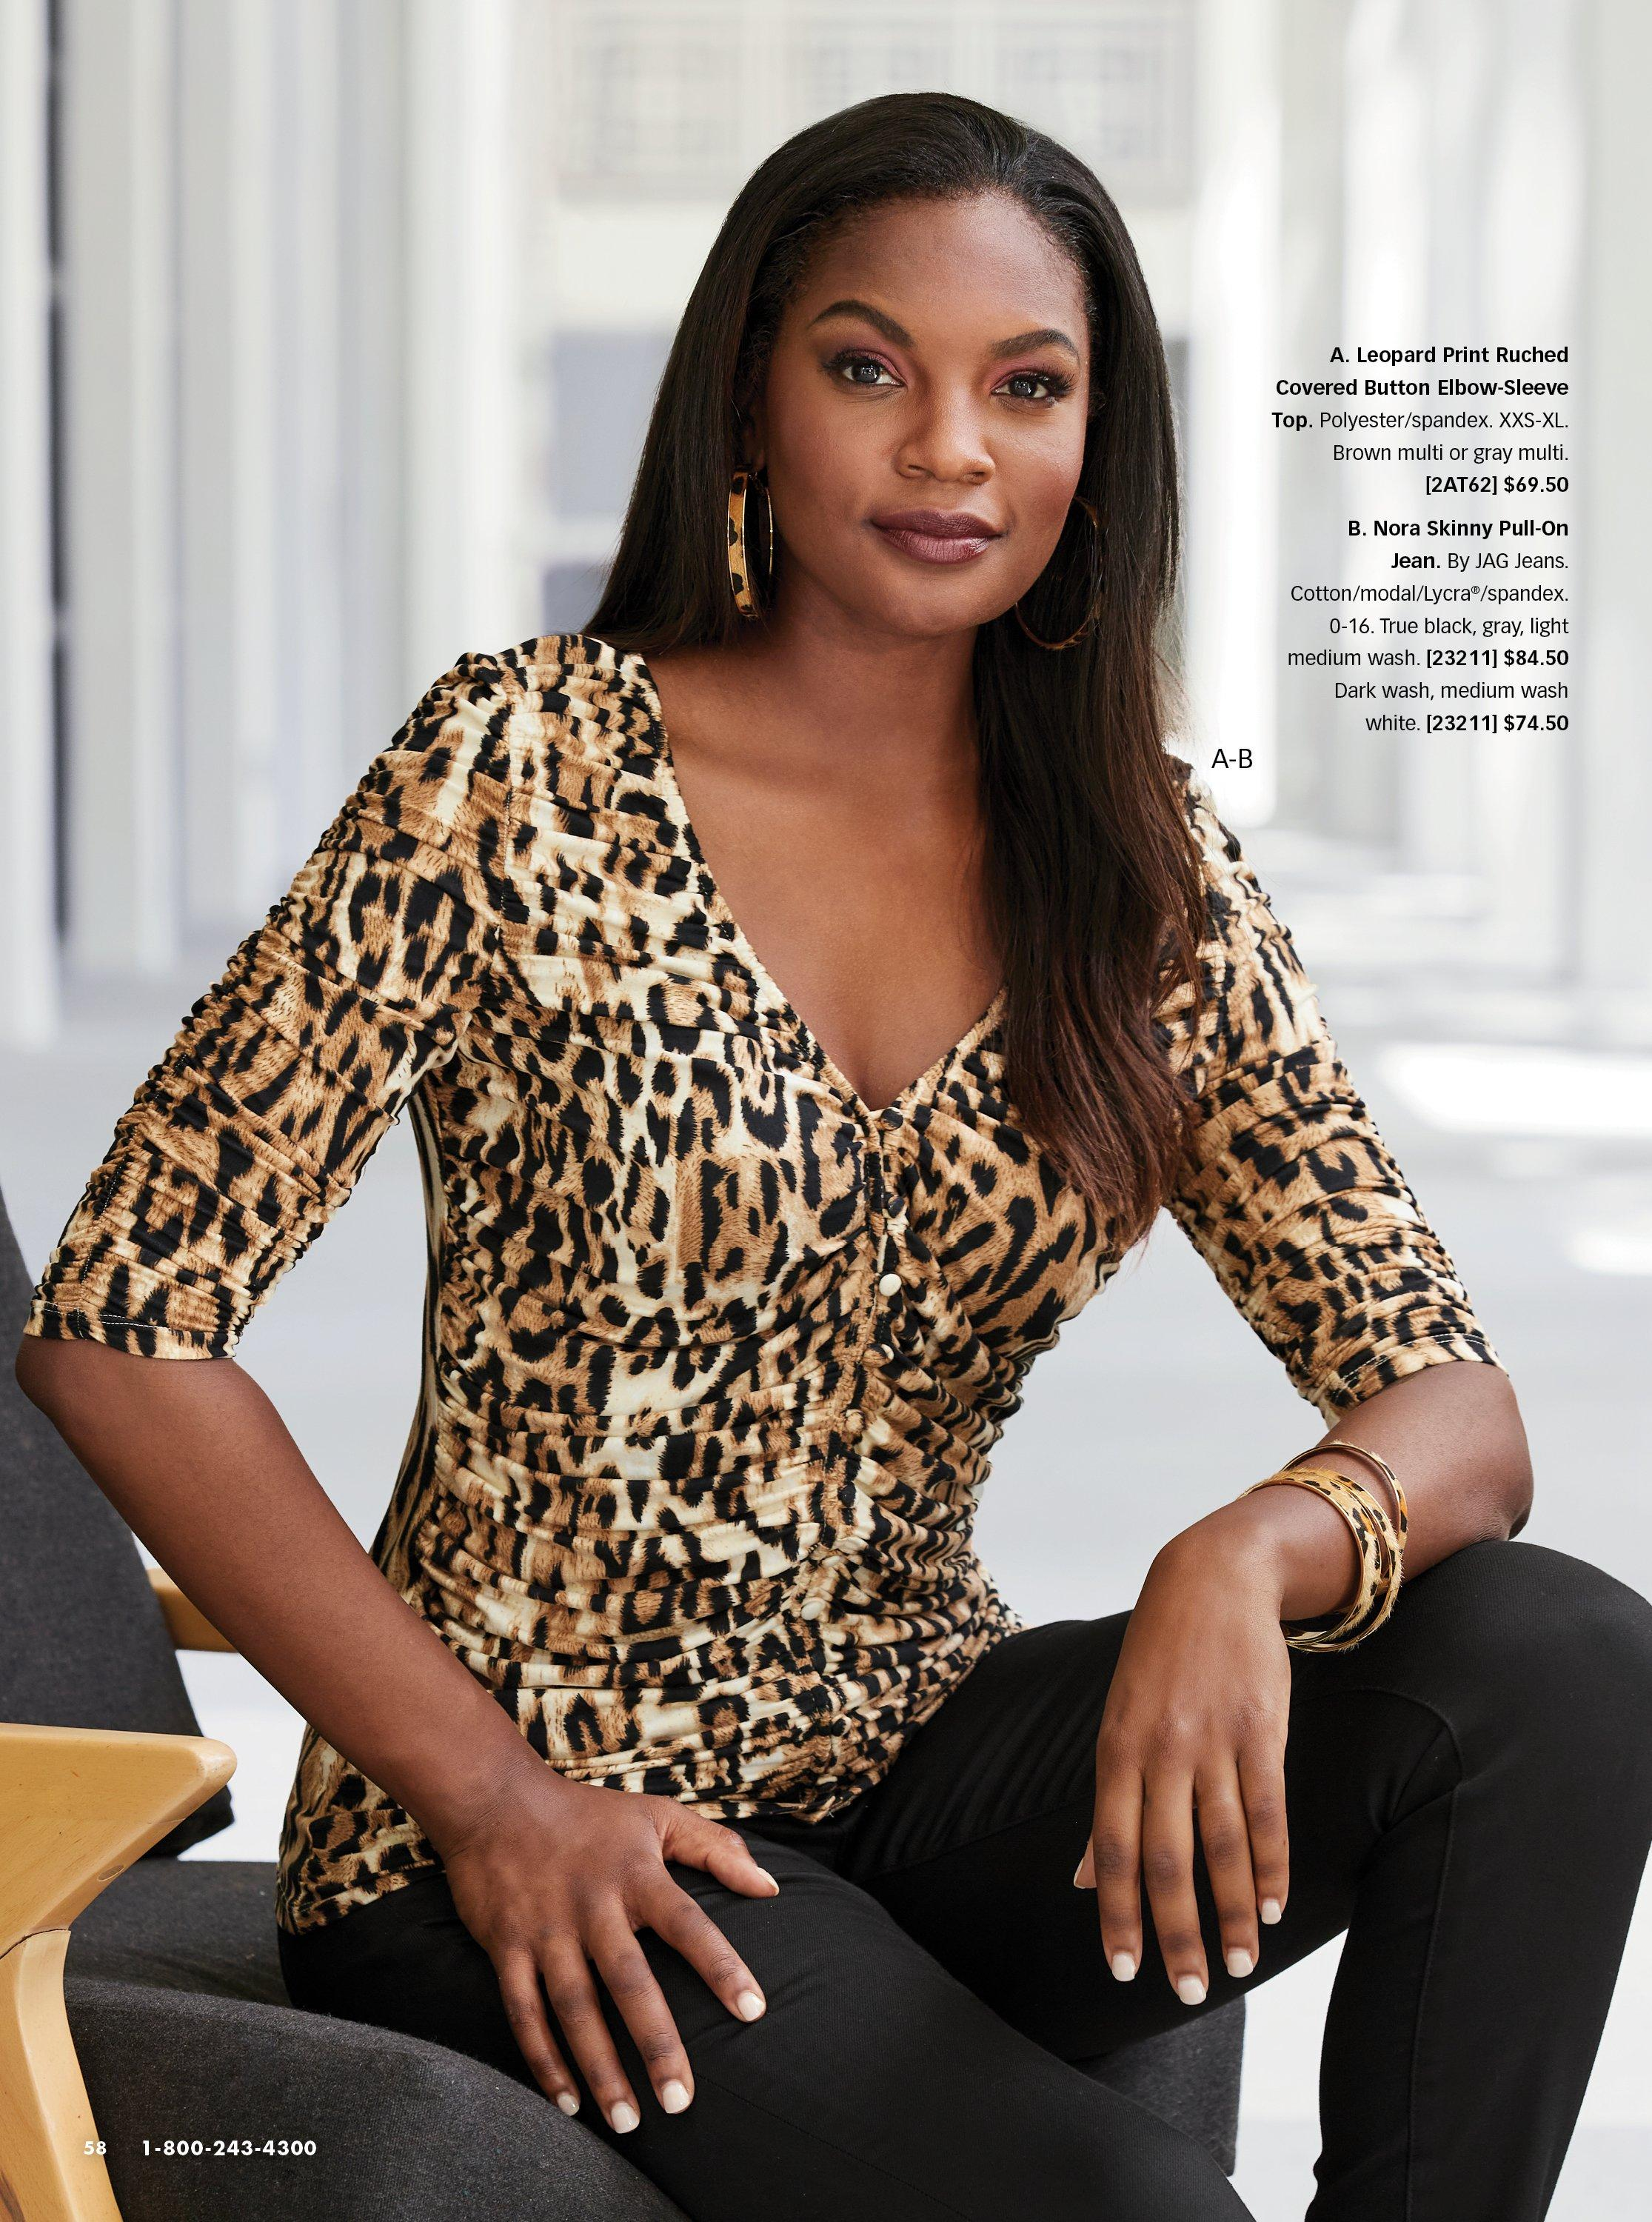 model wearing a leopard print long-sleeve ruched top and black jeans.